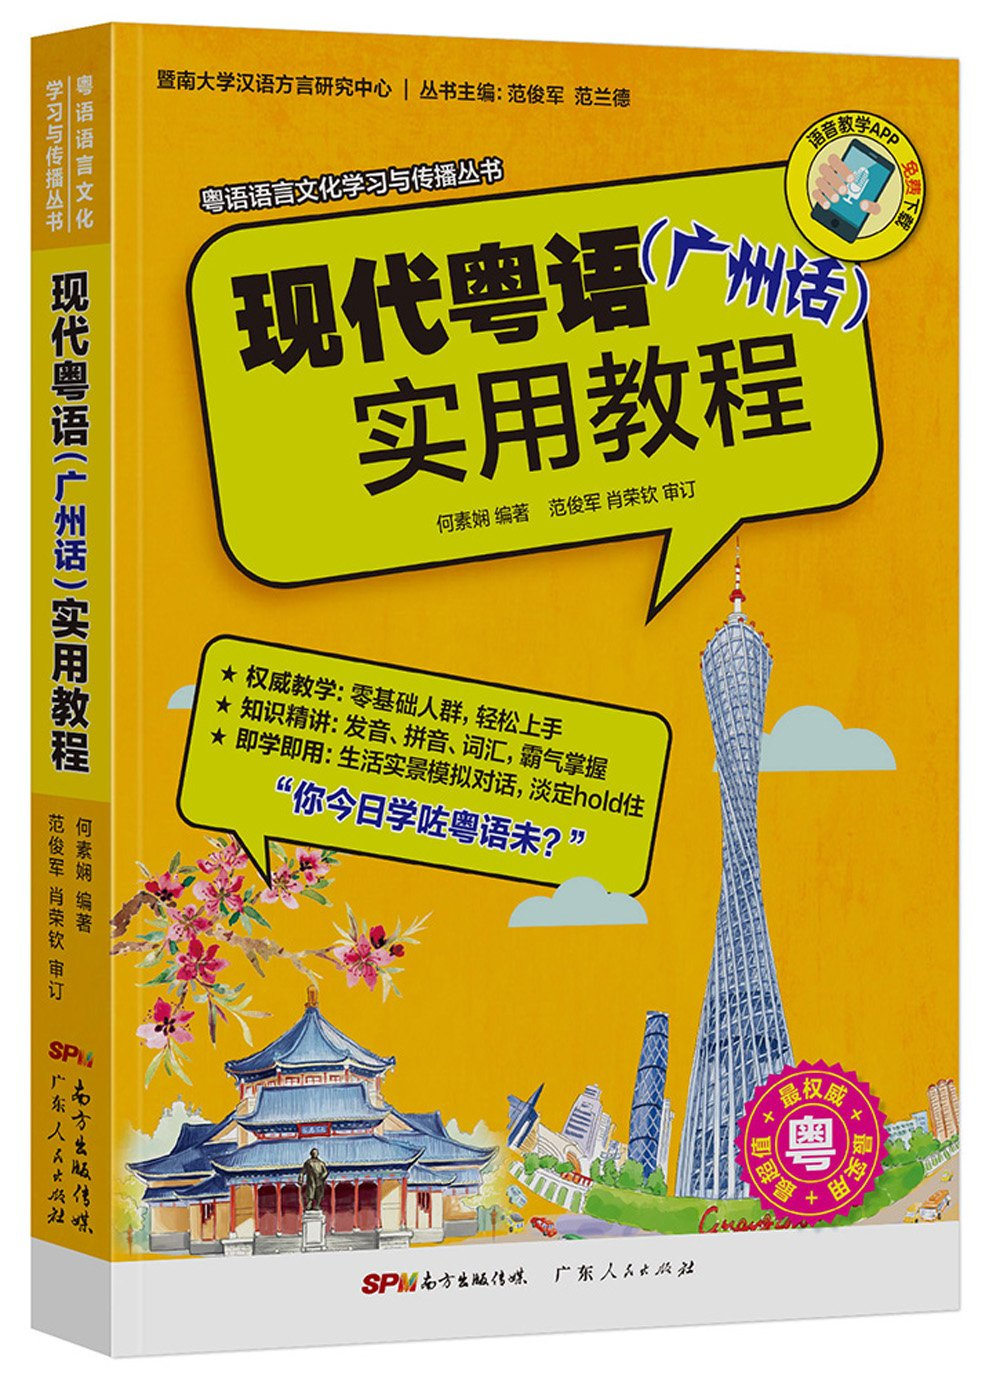 Cantonese Language And Culture Learning And Dissemination Series Practical Course Of Modern Cantonese (Cantonese)